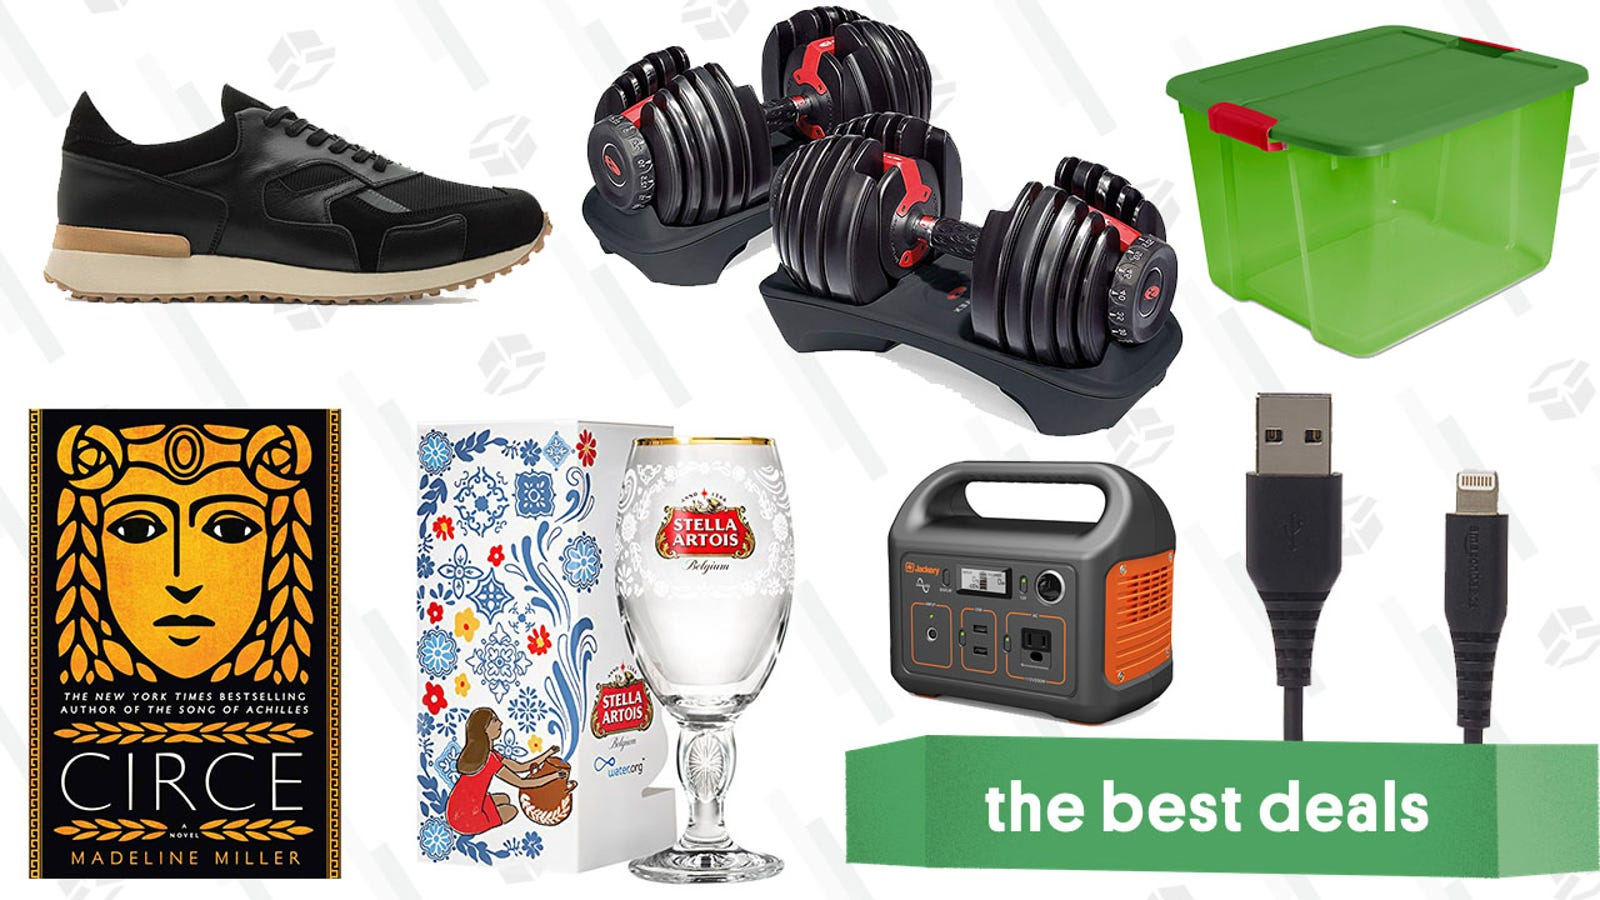 QnA VBage Sunday's Best Deals: Portable Power, Home Organization, Kindle Favorites, and More